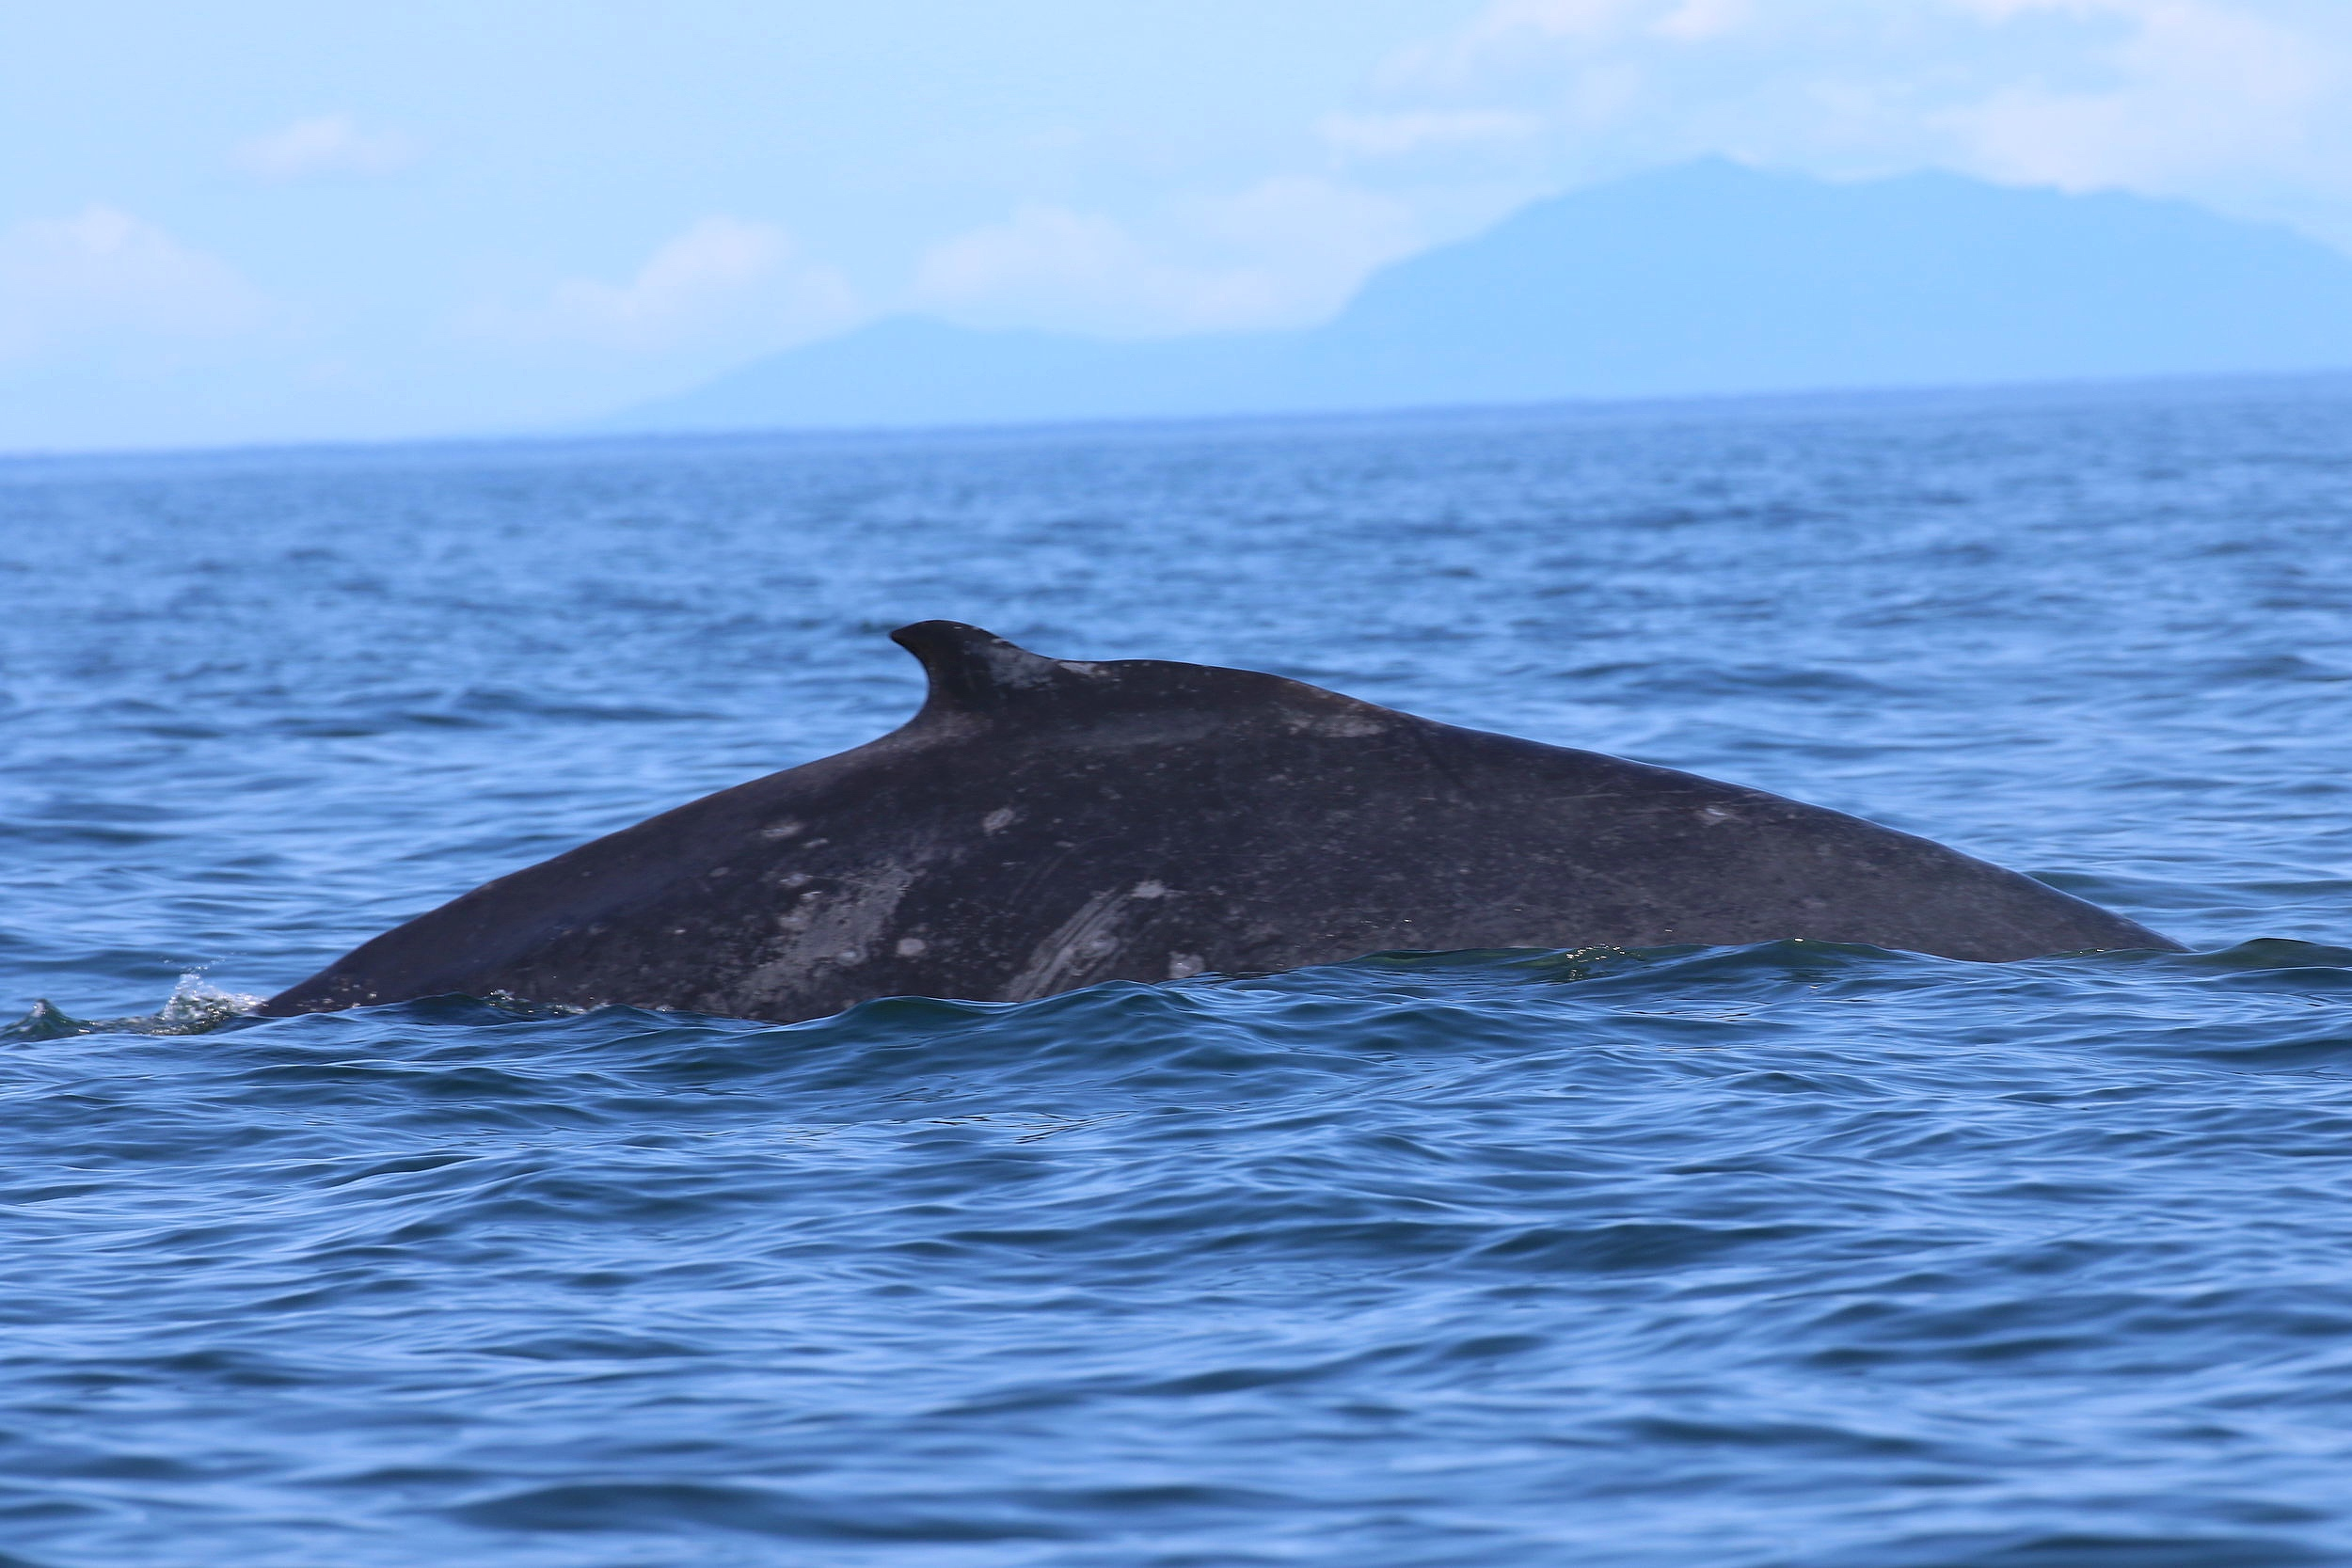 Slate has a slight back facing curve to her dorsal fin. Photo by Rebeka Pirker (10.30)